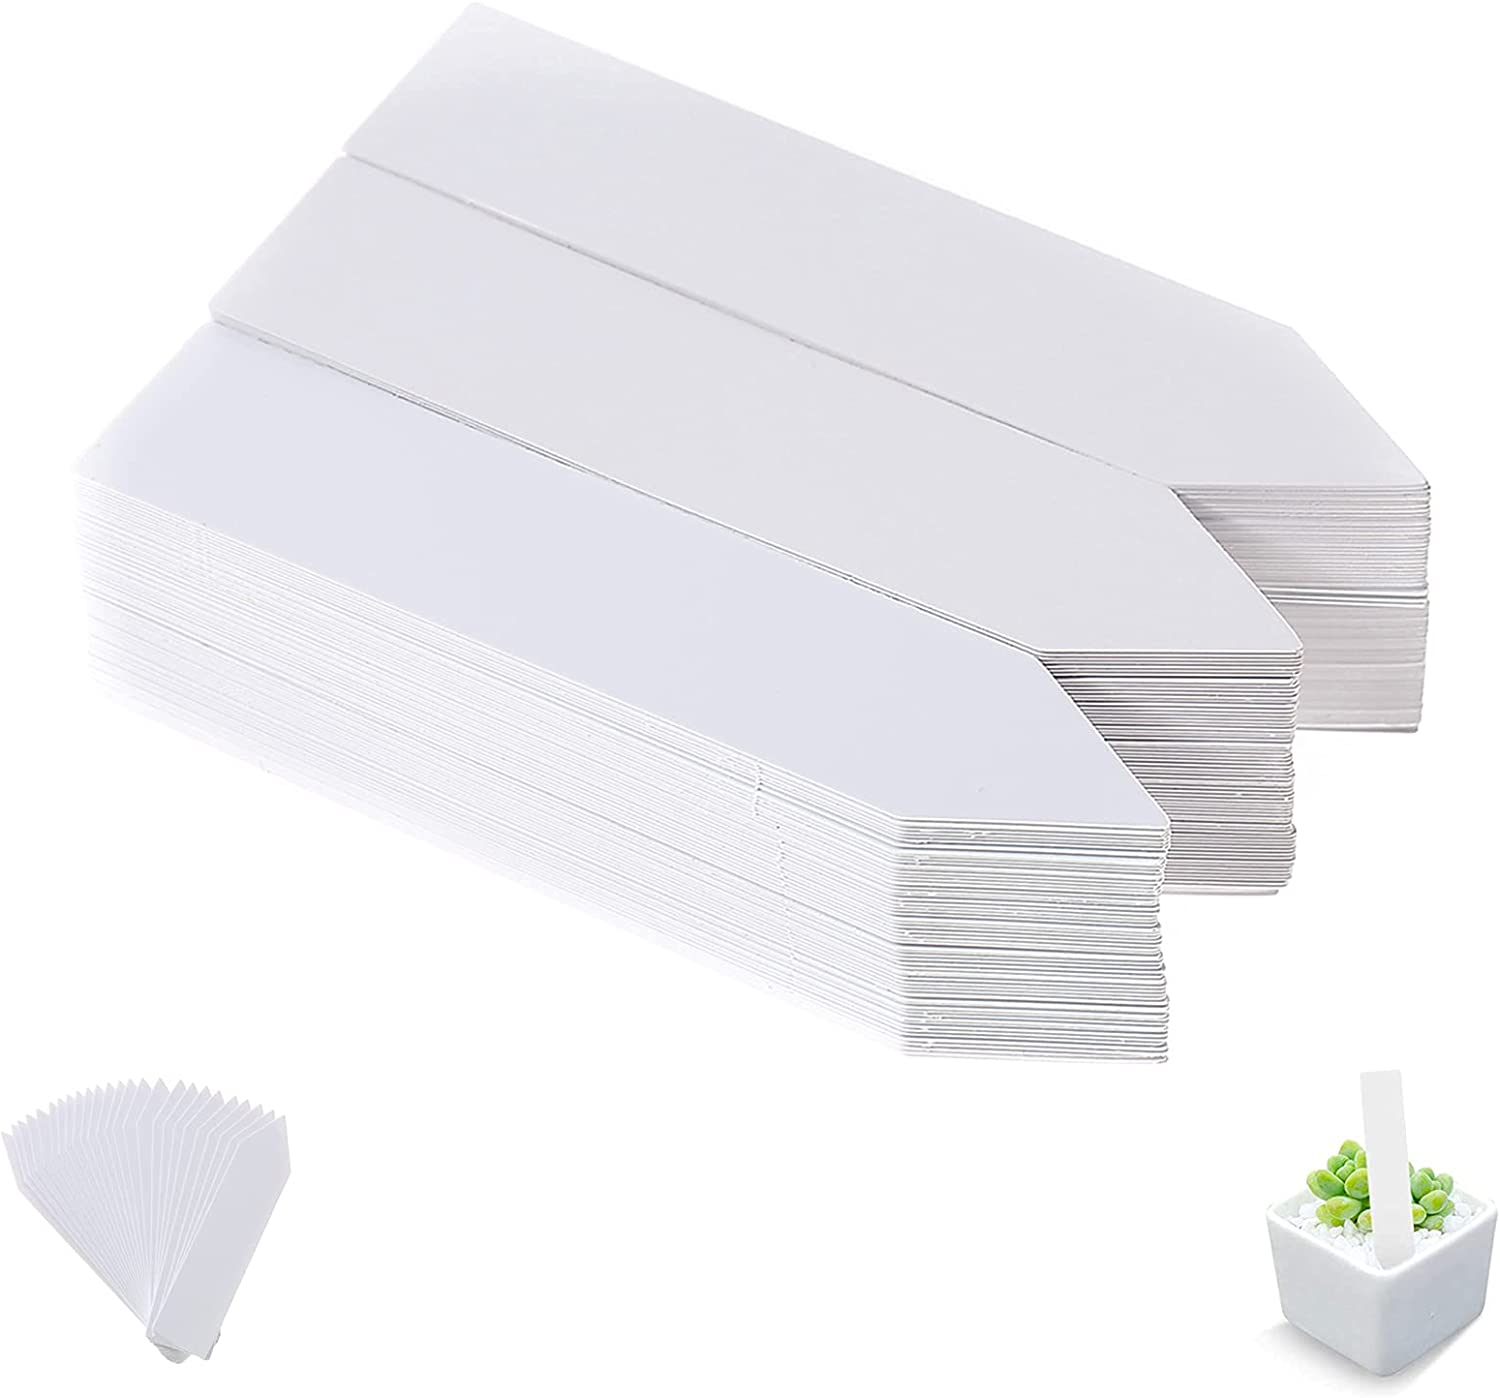 200 Pcs Plastic Plant Label Stakes for Seedling Nursery Garden Labels Pot Garden Marker Plant Tags, Outdoor Waterproof Garden Sign Tags for Flower, Vegetables and Herb, 4 Inch, White